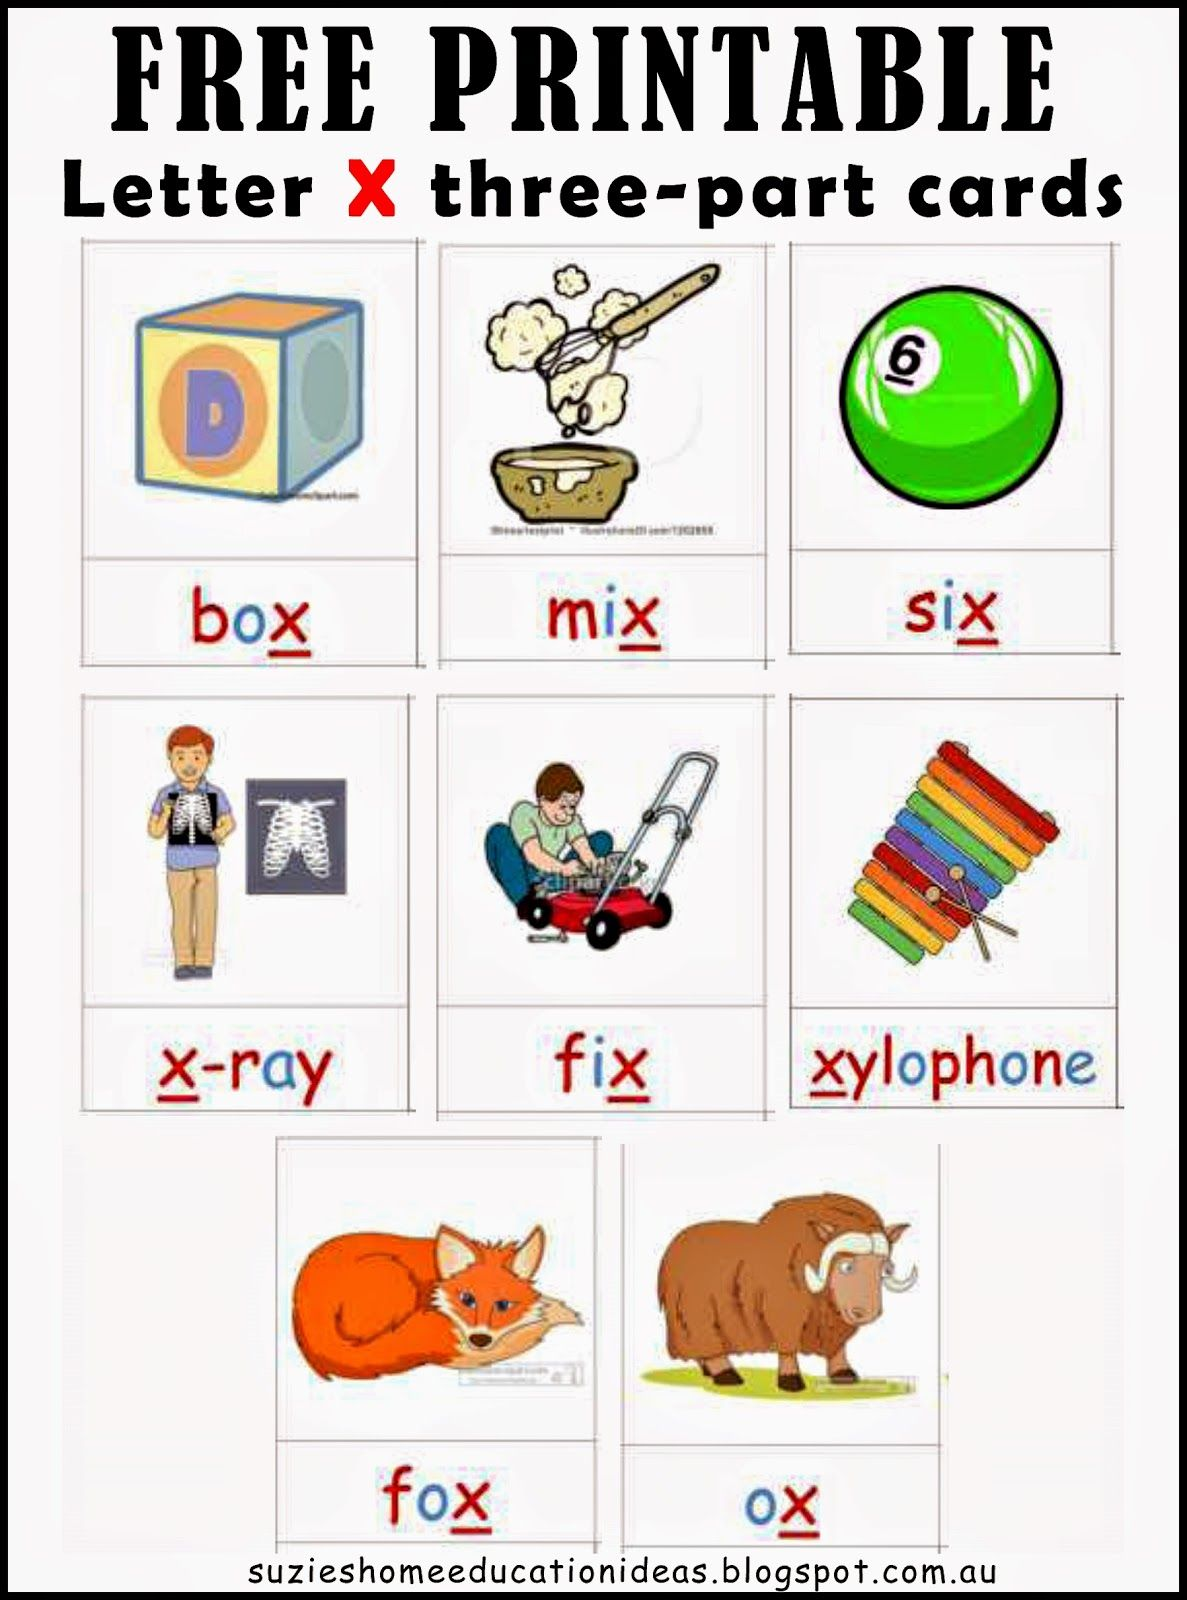 7 letter words containing x letter x printable cards and activity ideas activities 12436